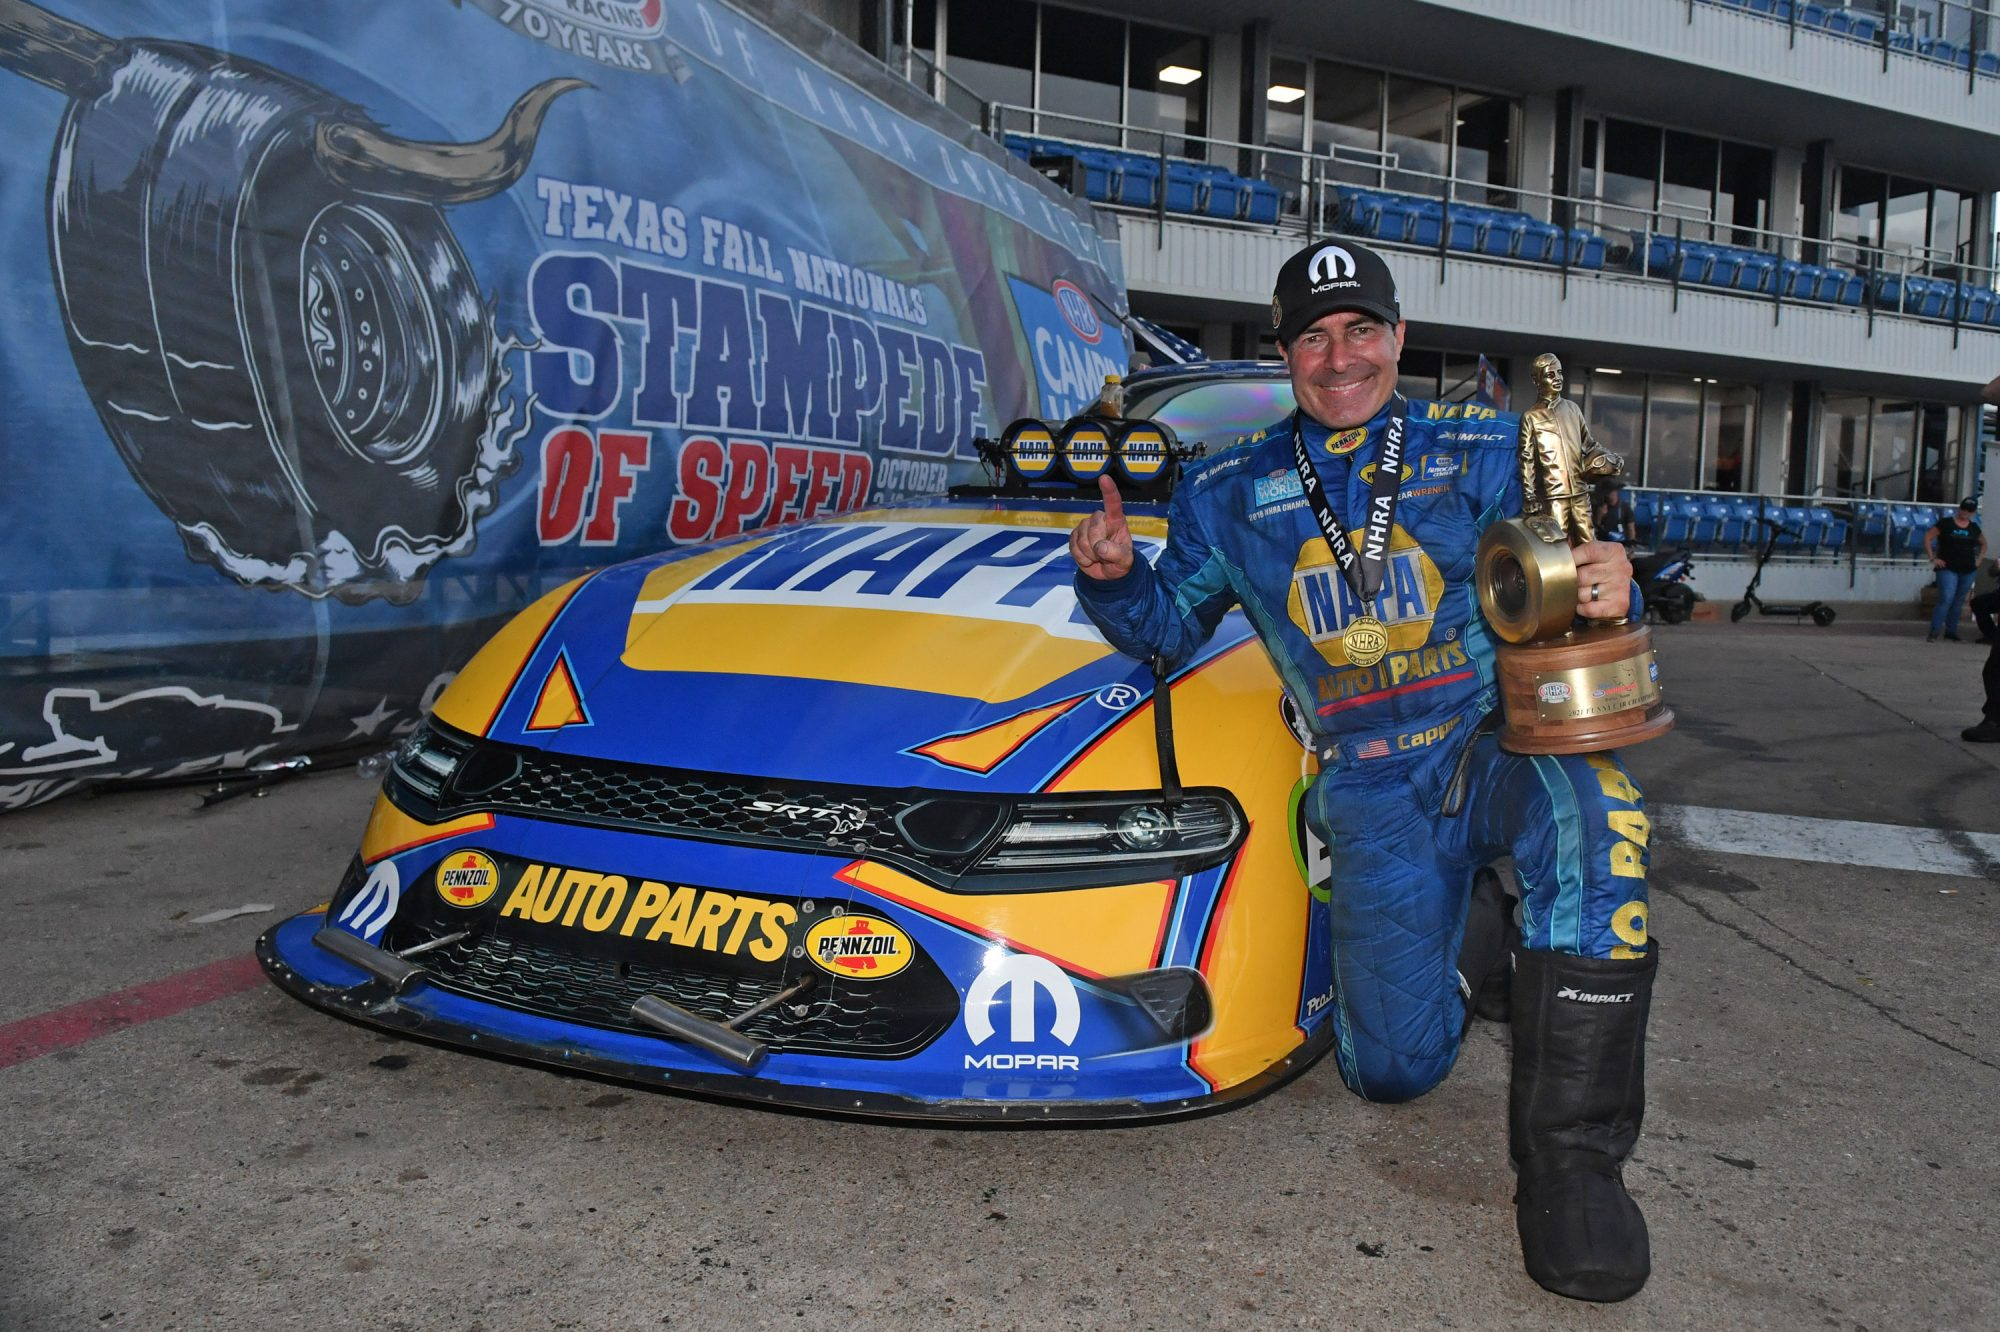 Ron Capps holding a Wally trophy after a win